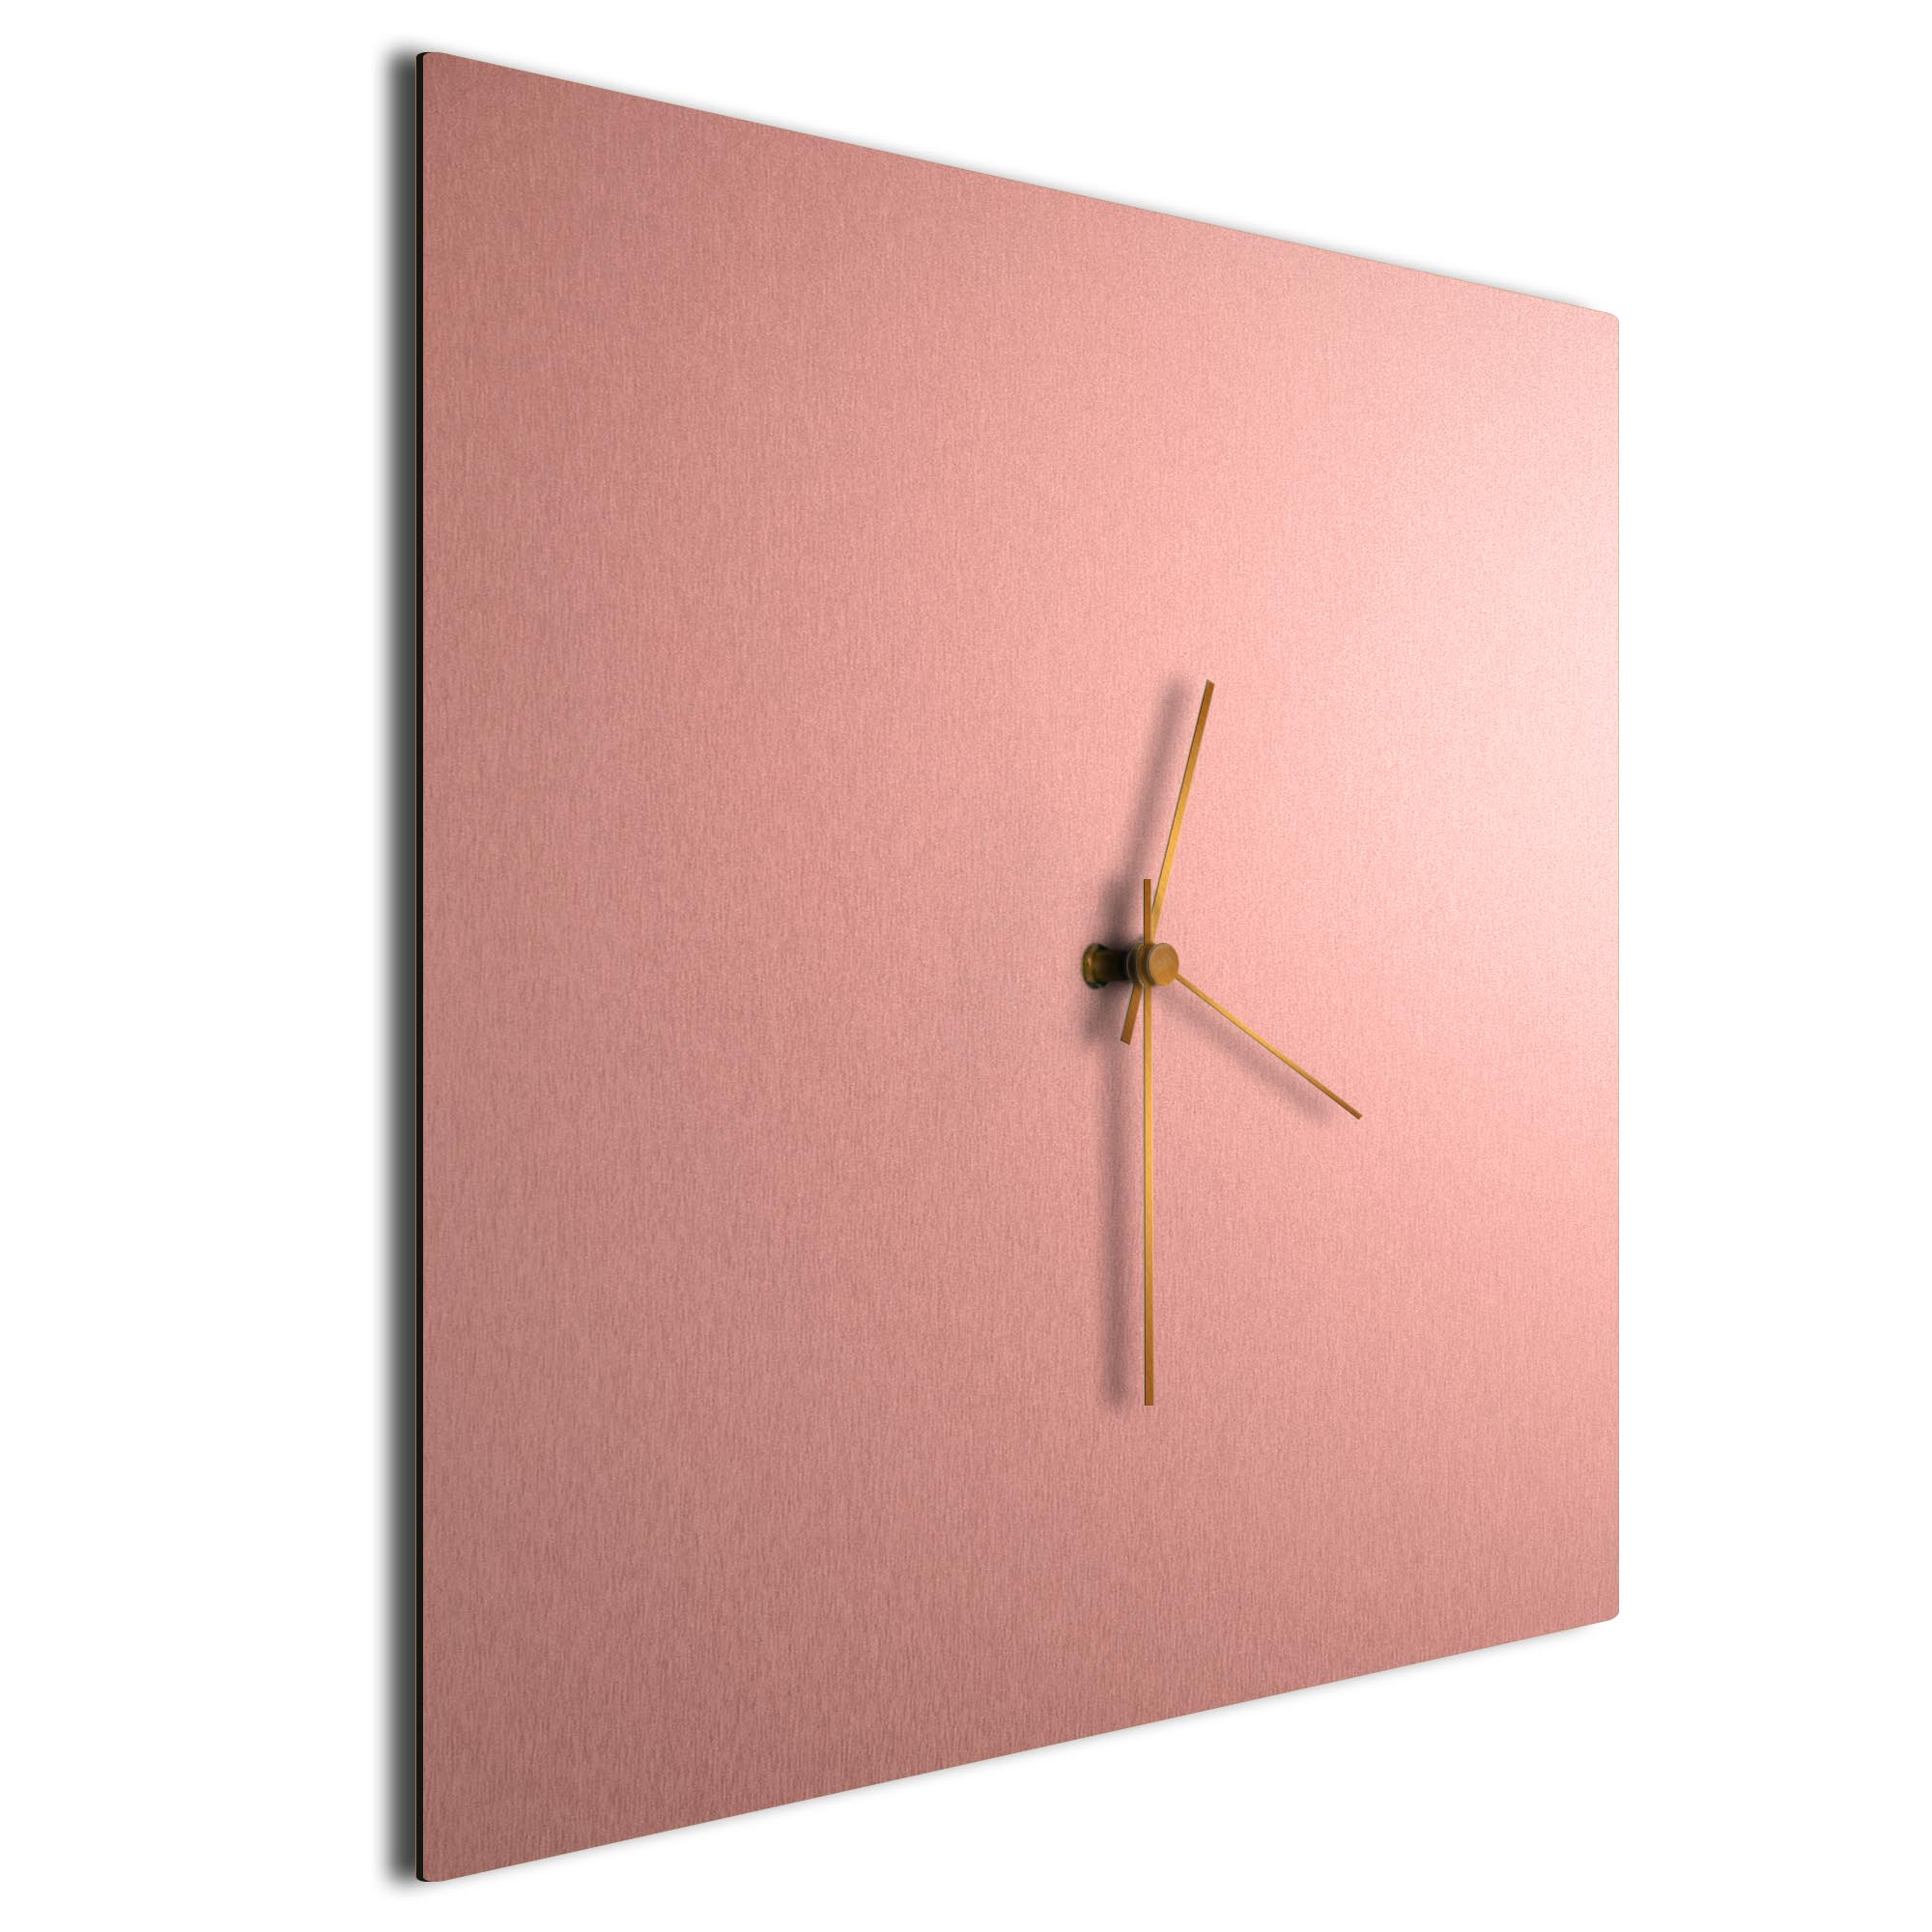 Coppersmith Square Clock Large Bronze - Image 2